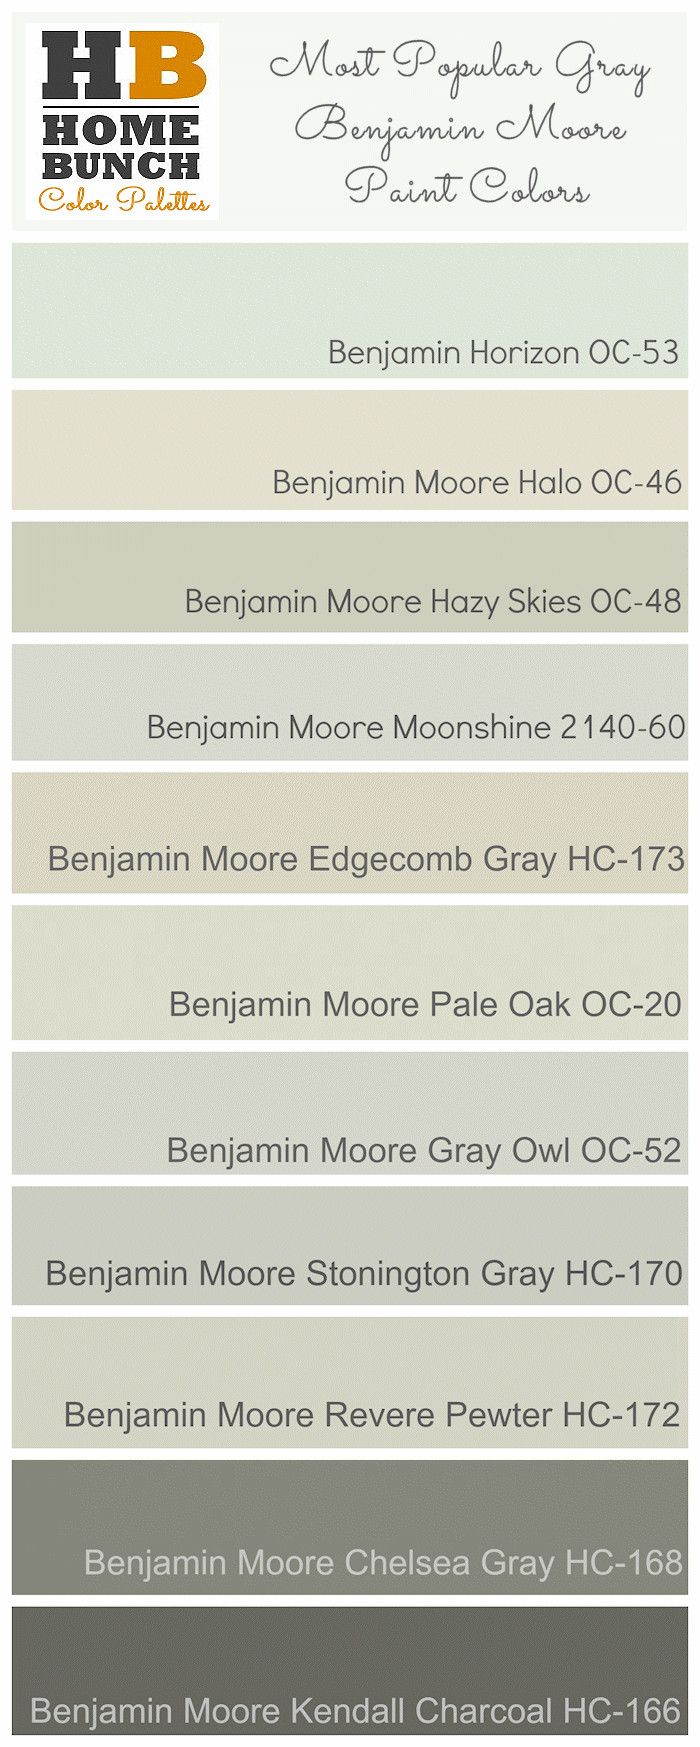 Most popular gray benjamin moore paint colors benjamin horizon oc 53 benjamin moore halo oc 46 Great paint colors